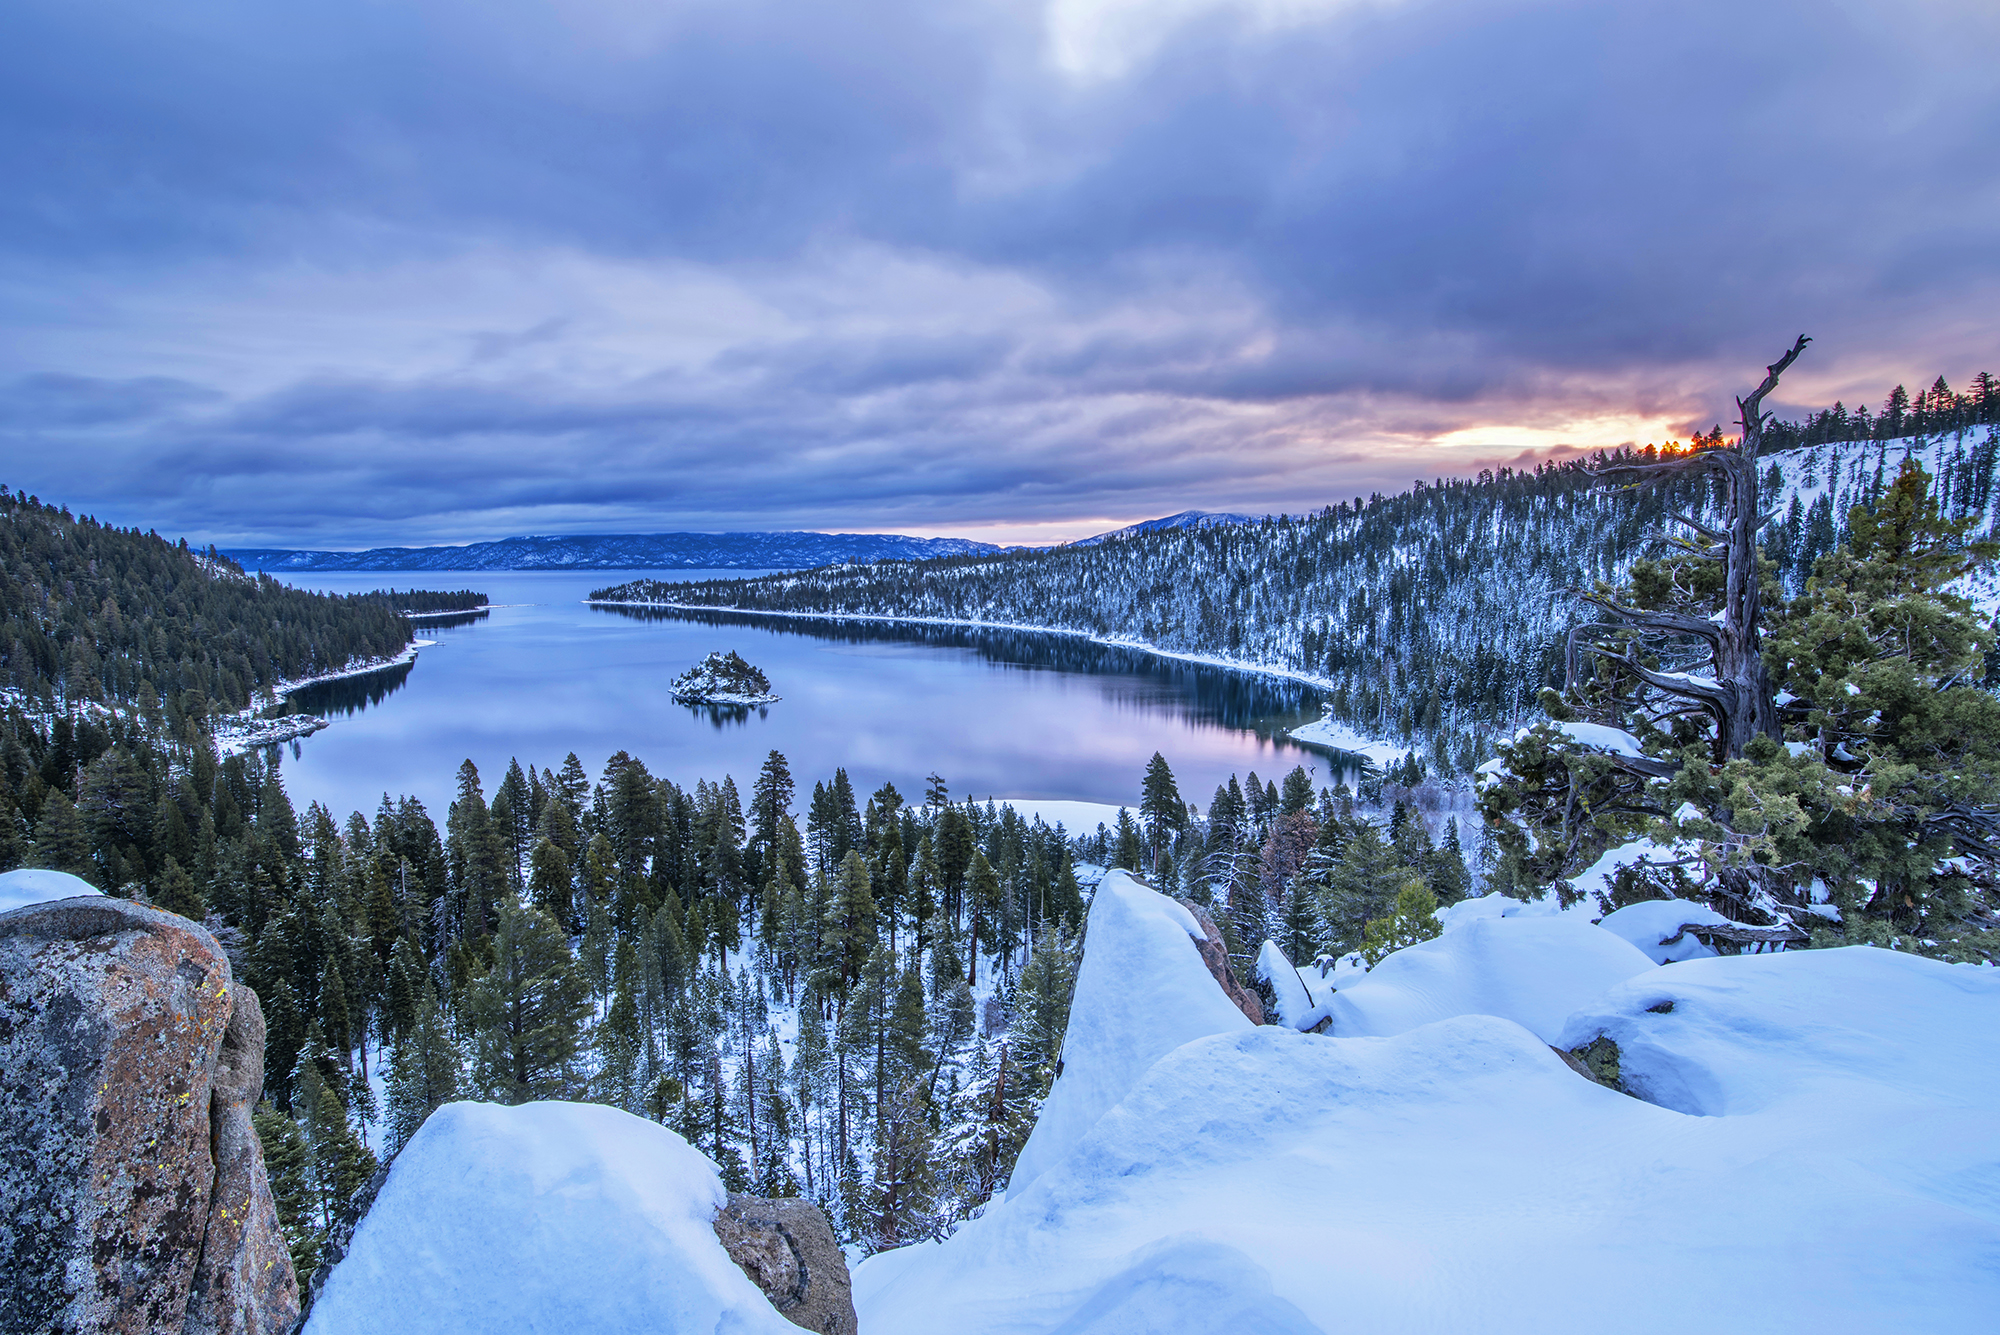 Emerald bay winter sunrise